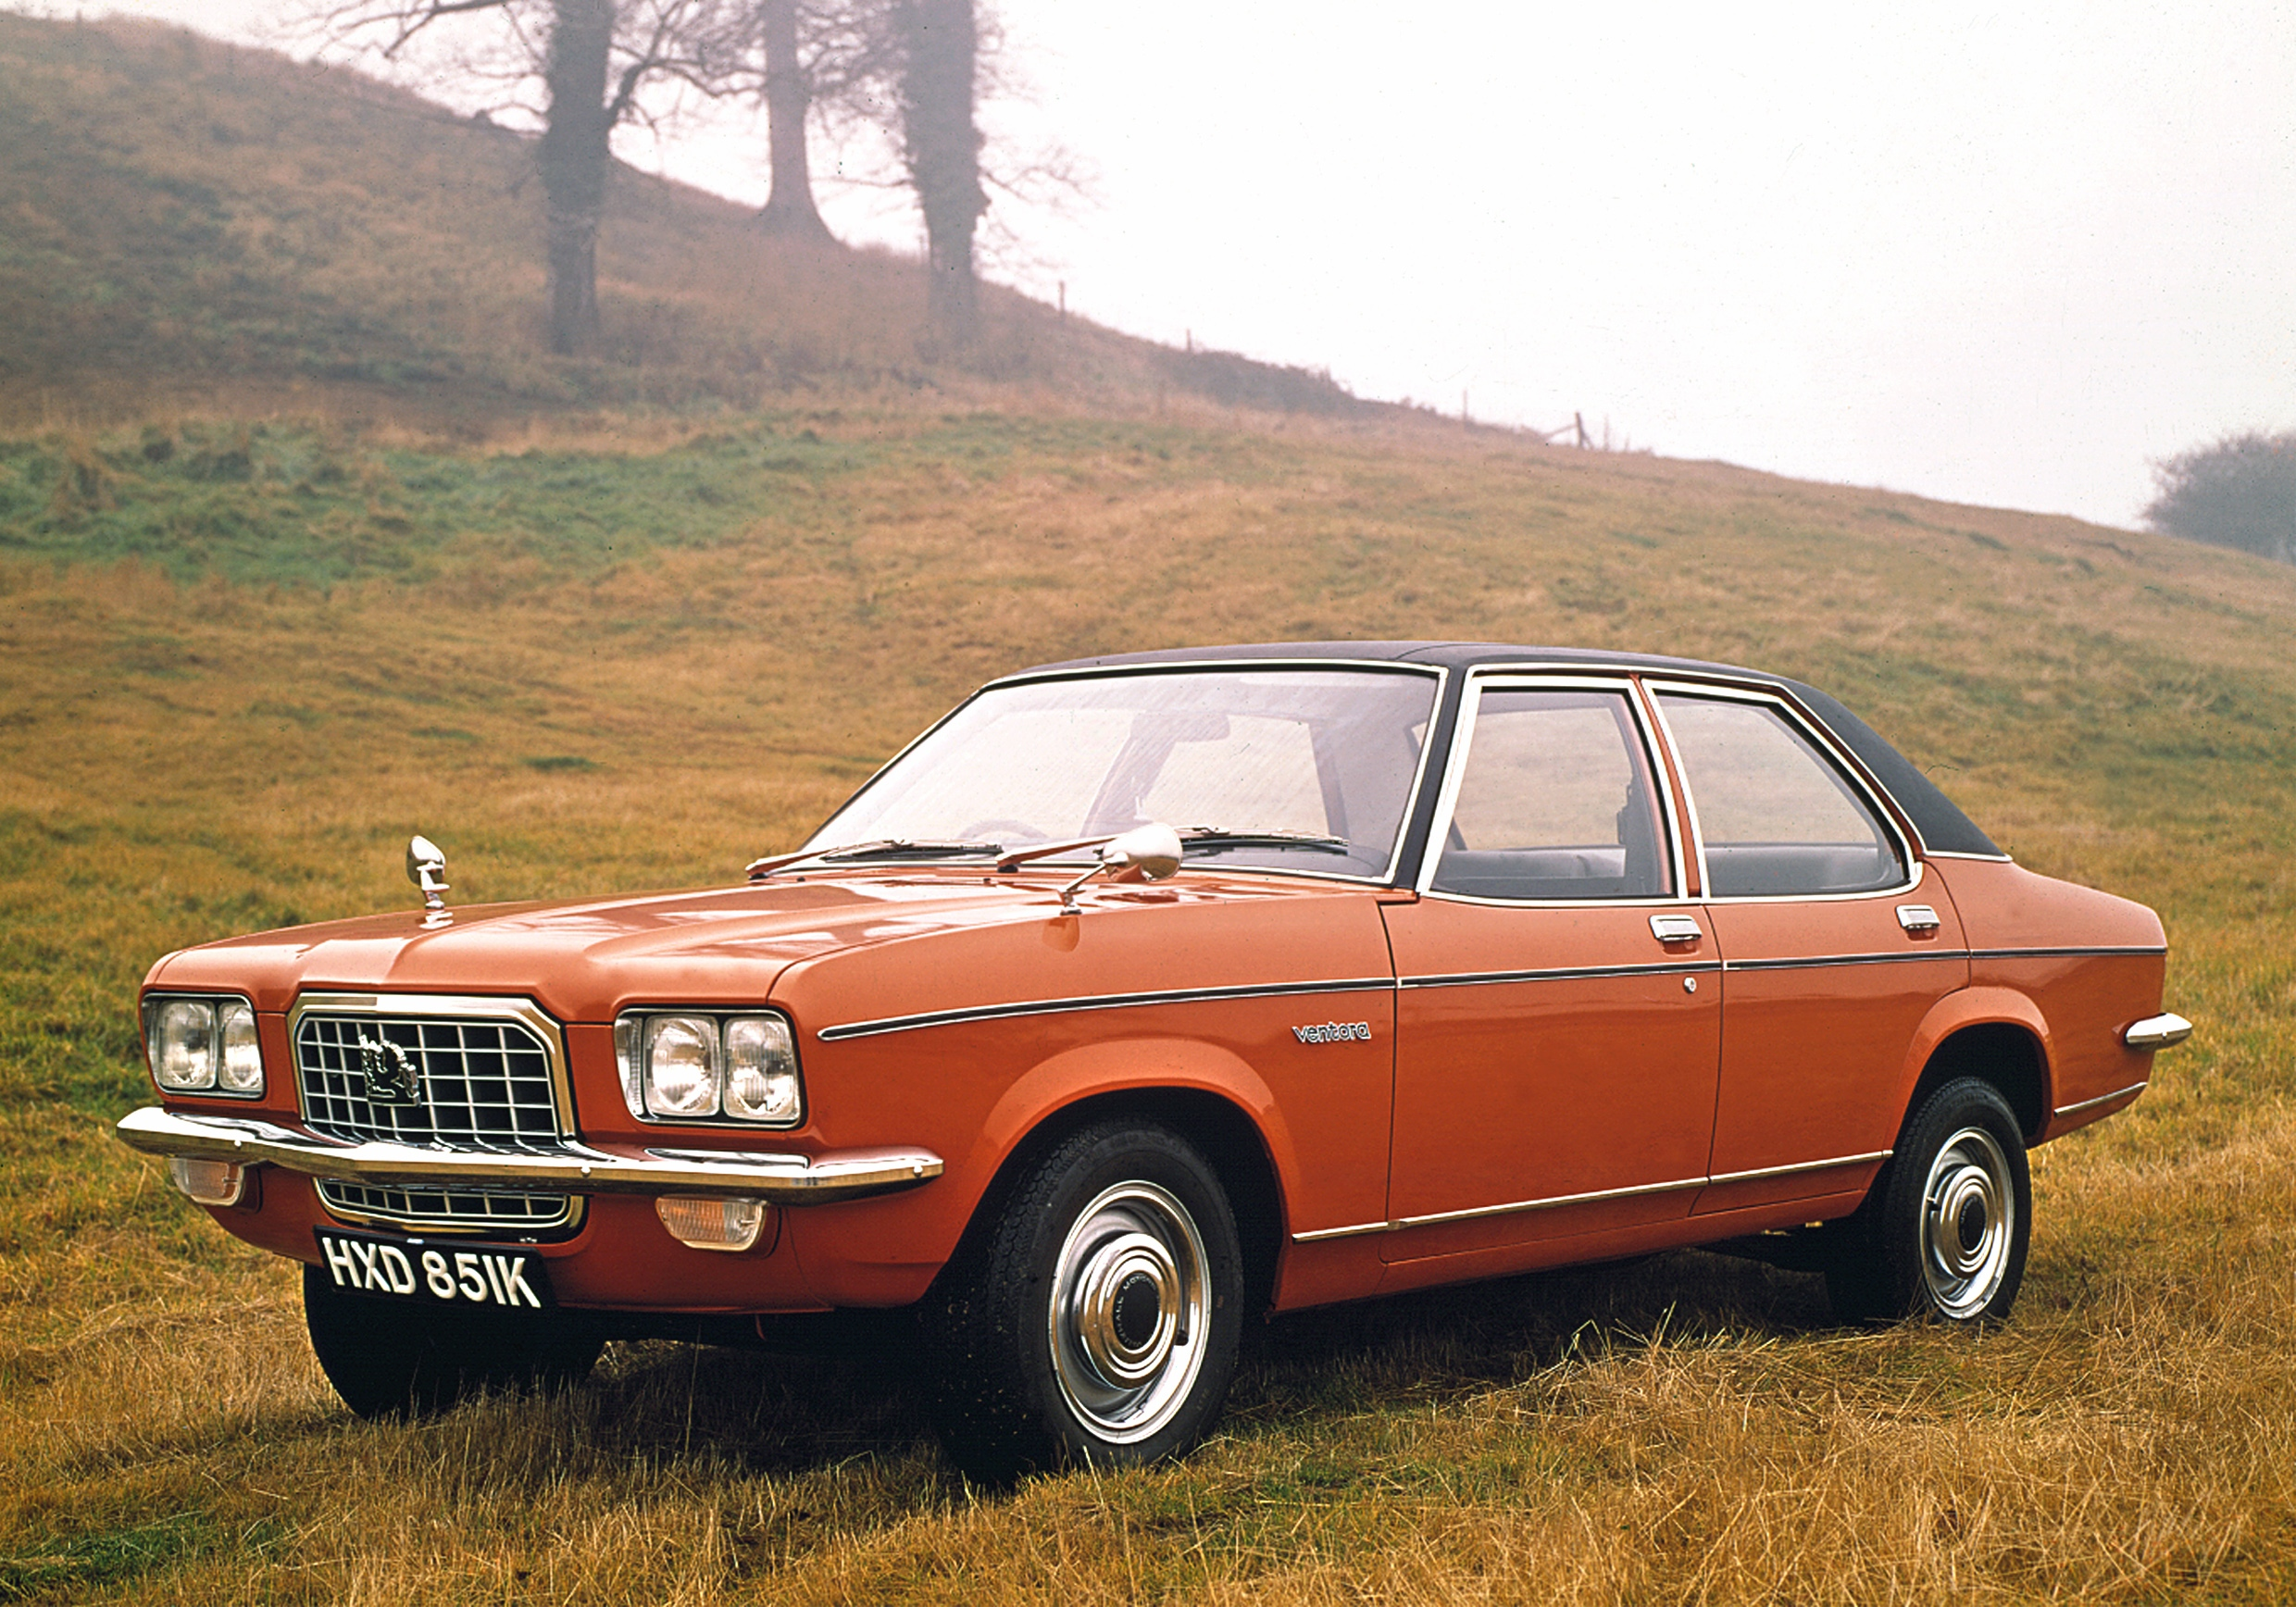 Under-rated middle-class style. The 1972 Vauxhall Ventora.